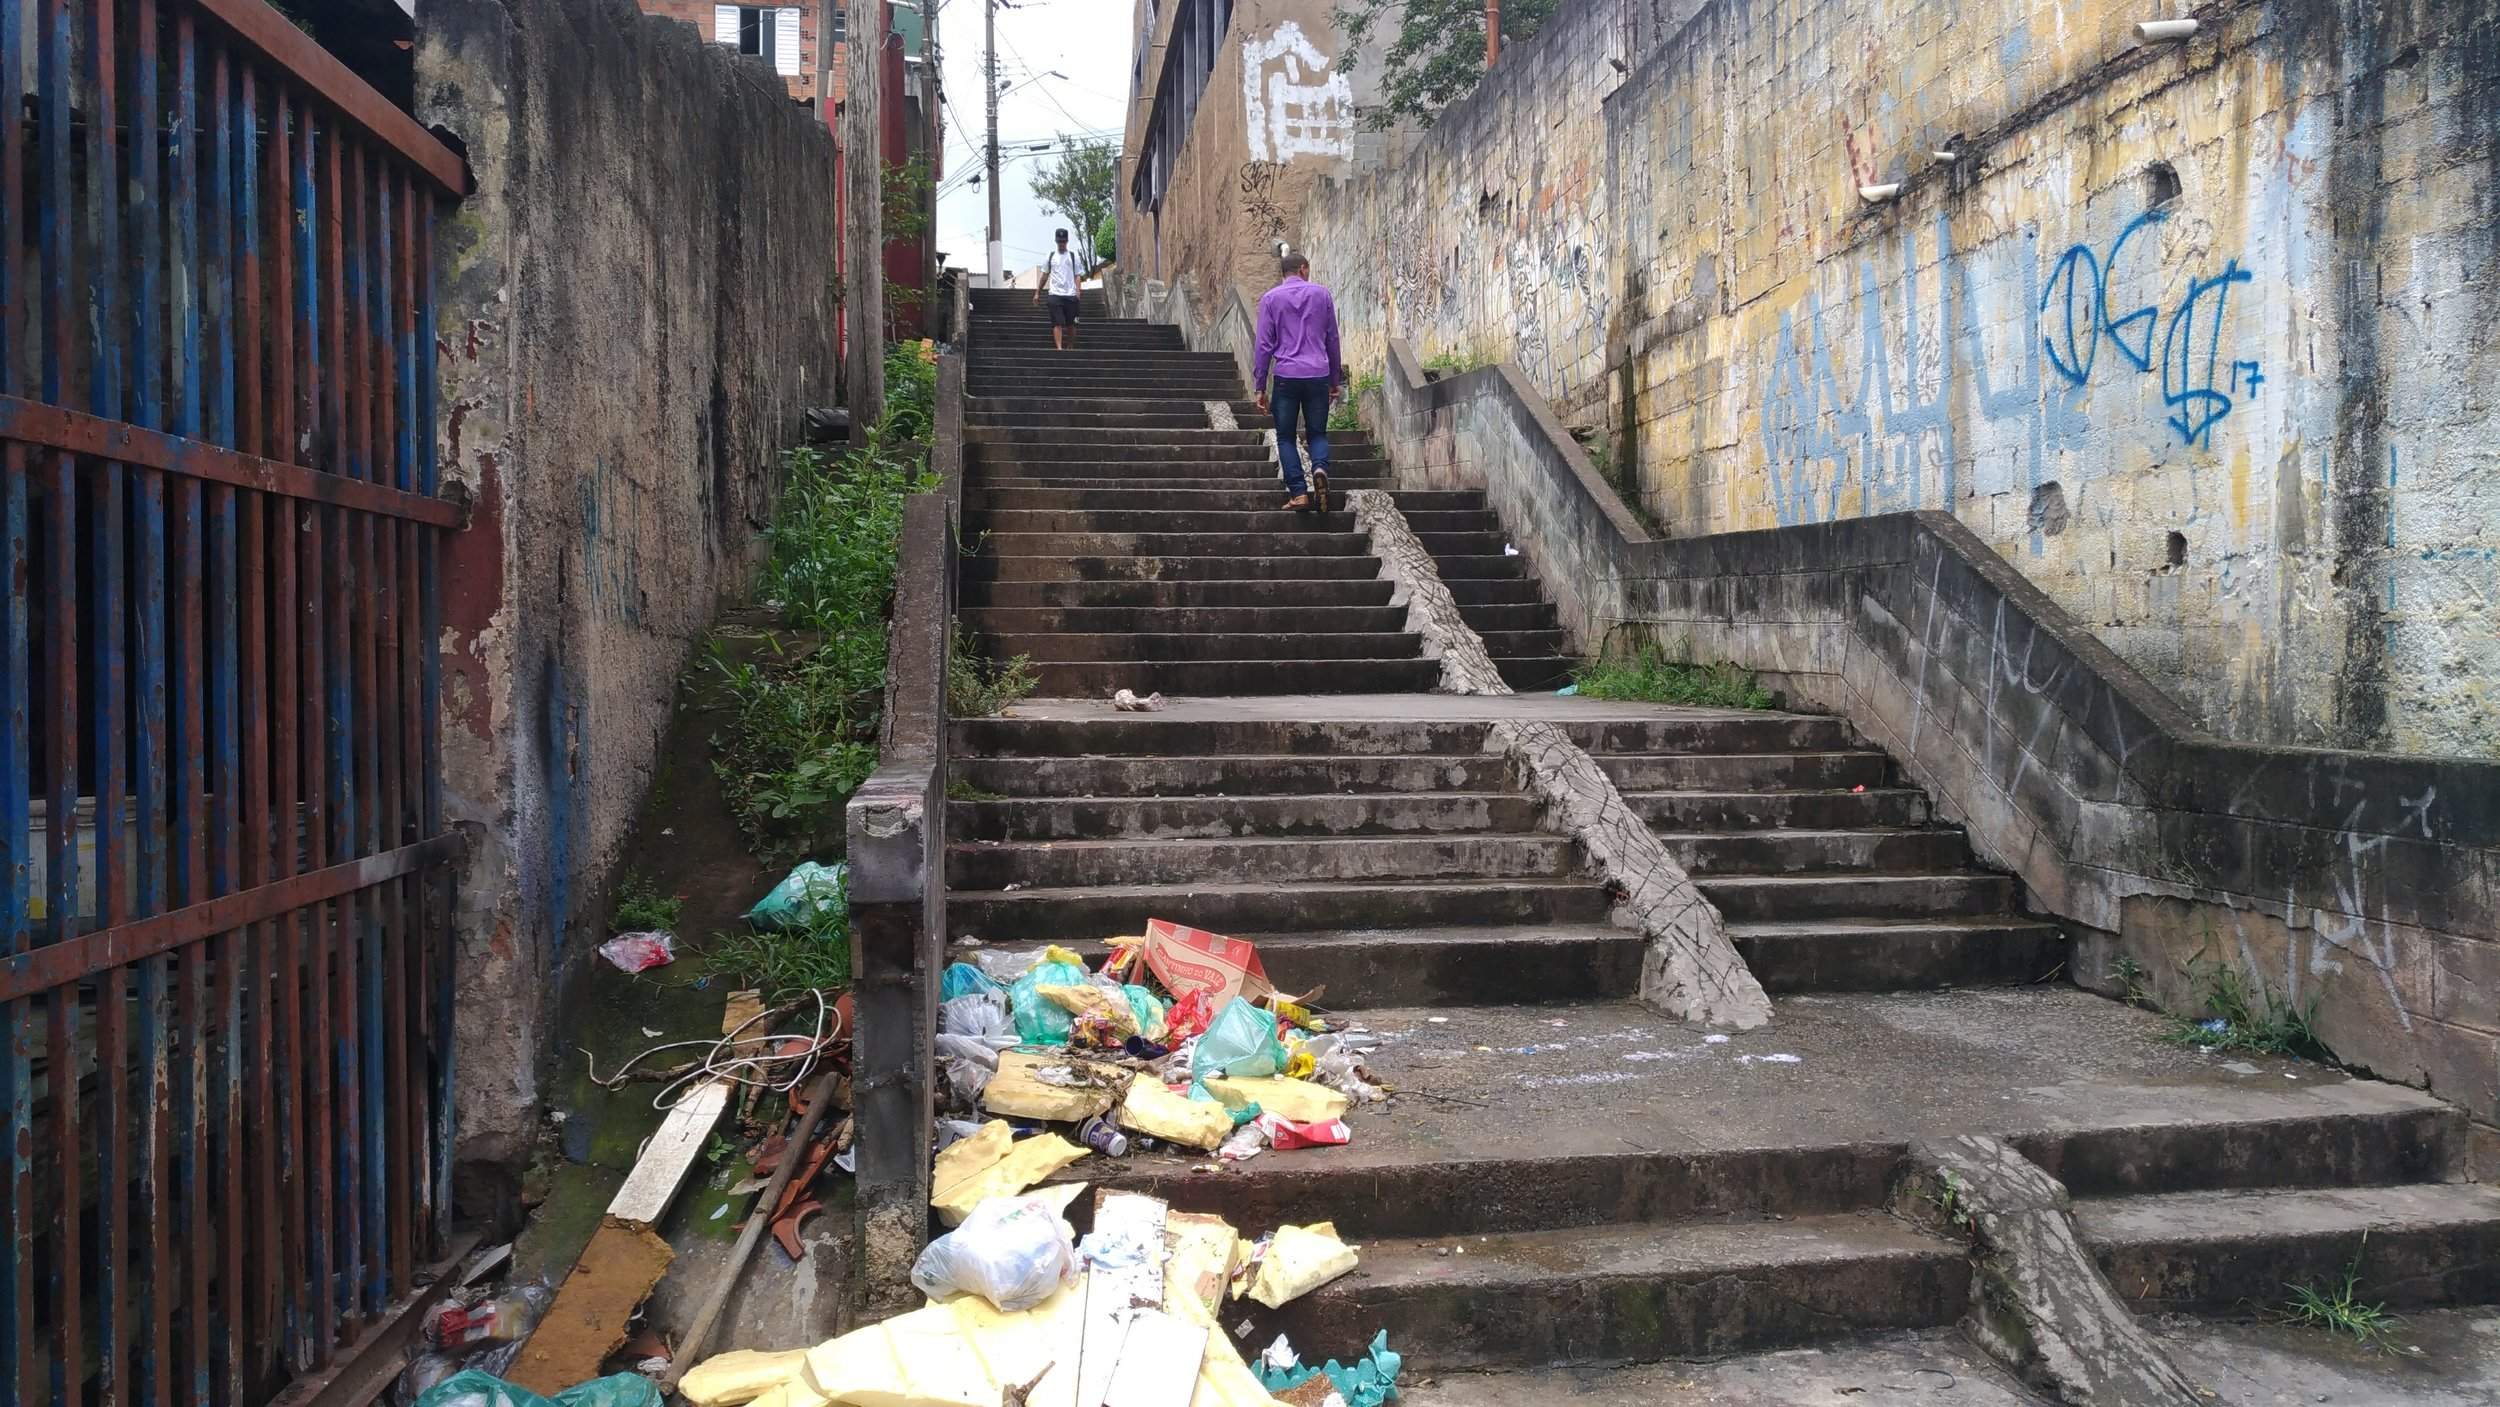 This public staircase serves as a connector in the city. Credit: Cidade Ativa